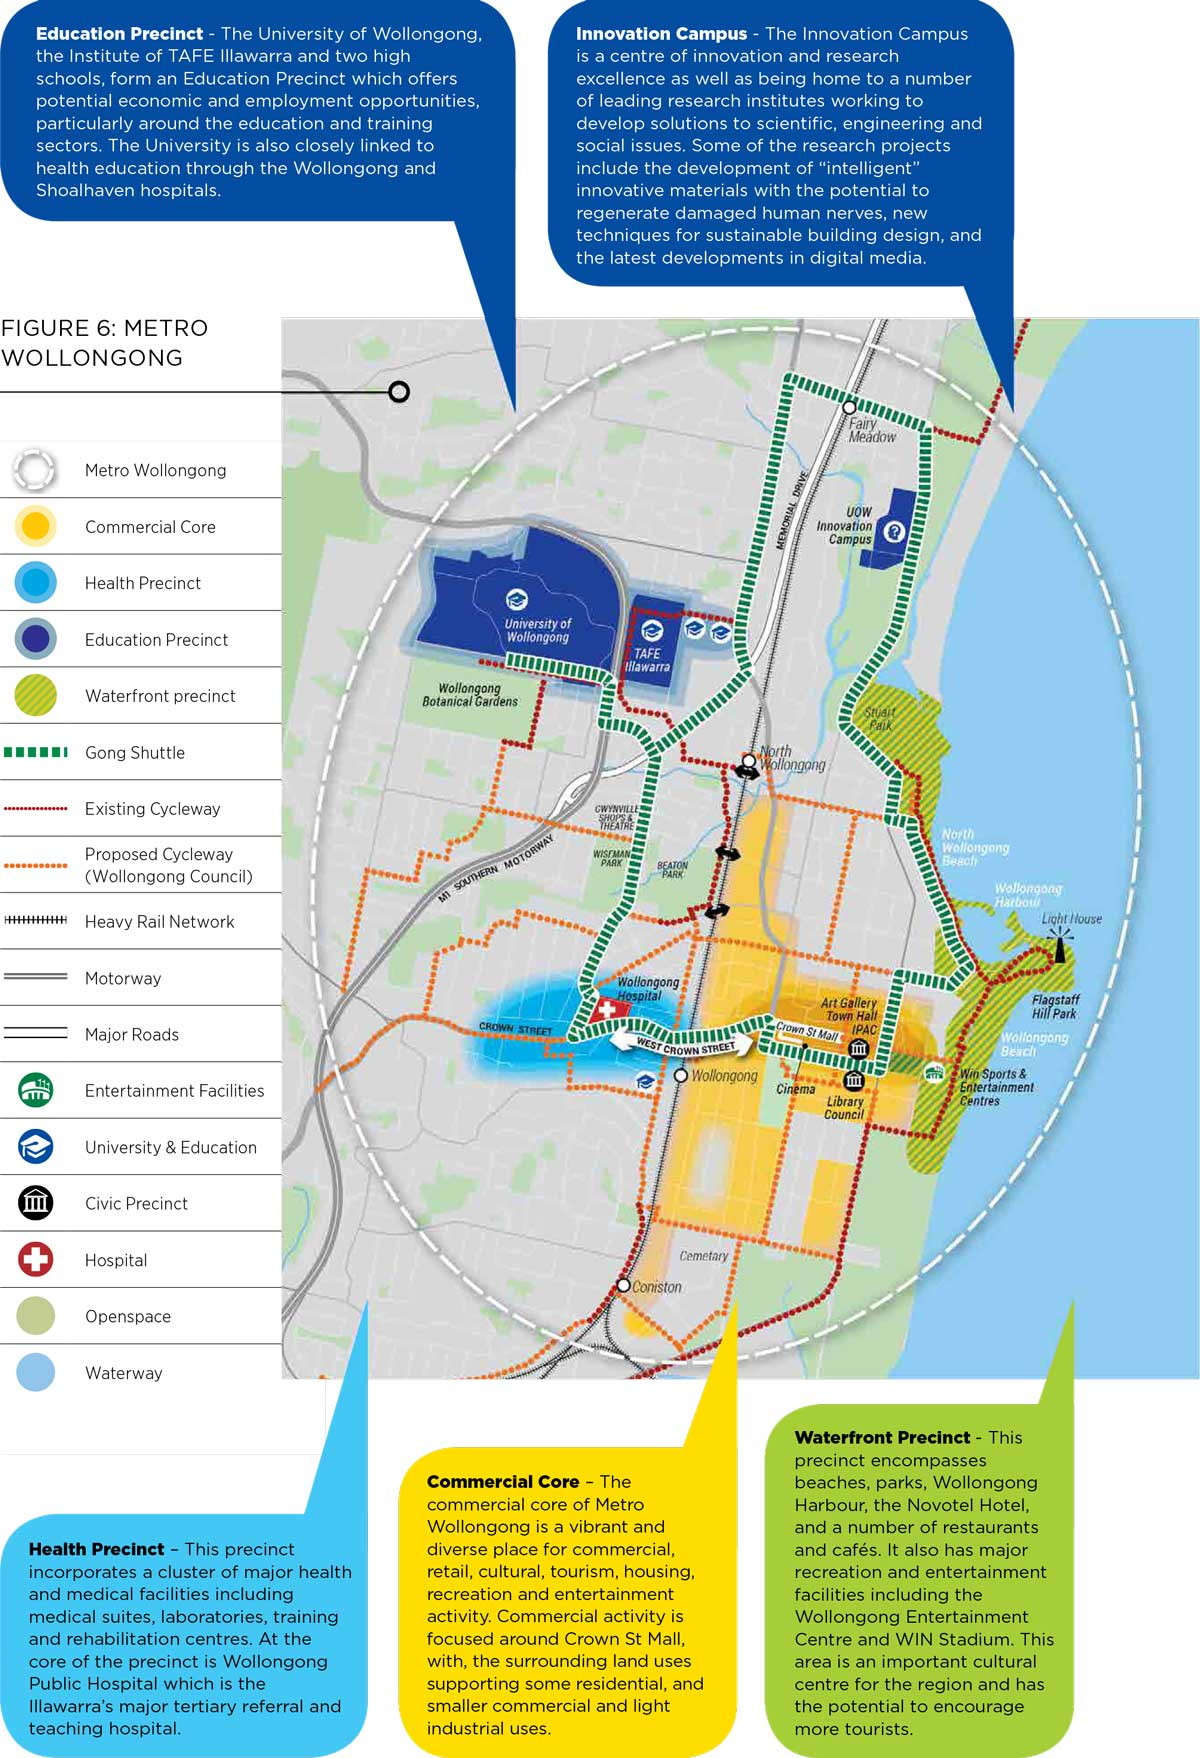 Map of metropolitan Wollongong with descriptions of the health, education and waterfront precincts, and commercial core and Innovation Campus